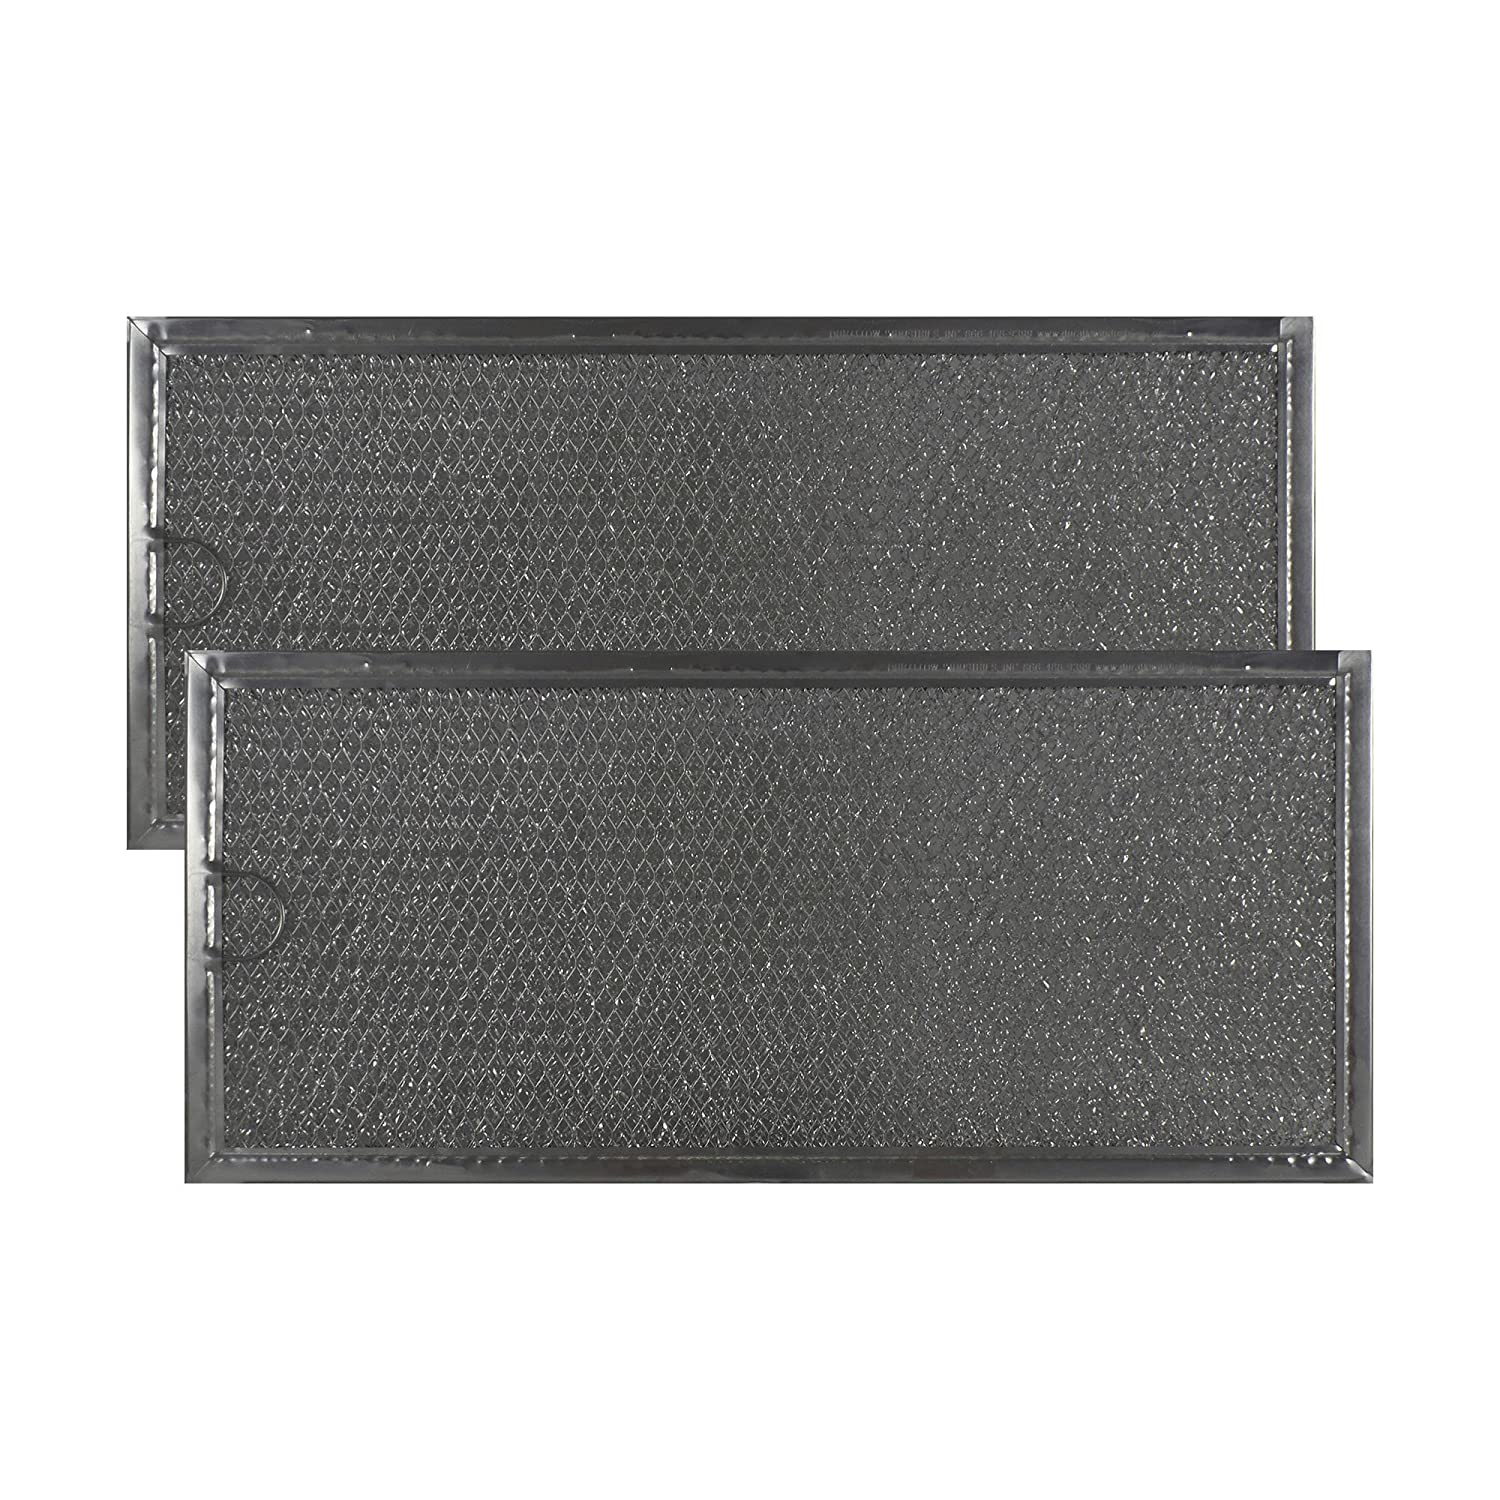 Air Filter Factory 2-PACK Compatible Replacement For Whirlpool AP4299743 Aluminum Grease Microwave Oven Filters